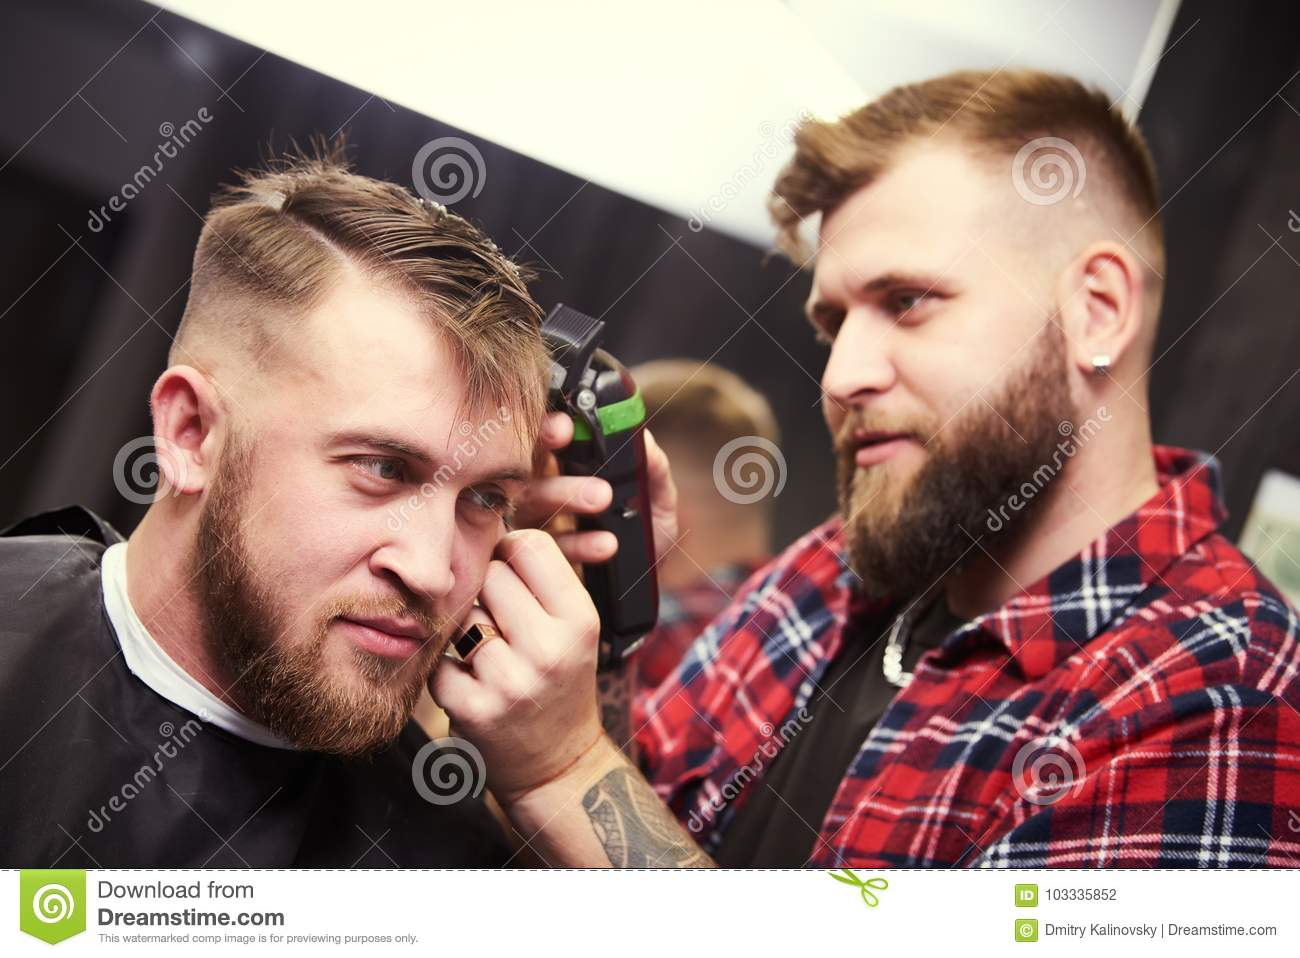 Barber or hair stylist at work. Hairdresser cutting hair of client